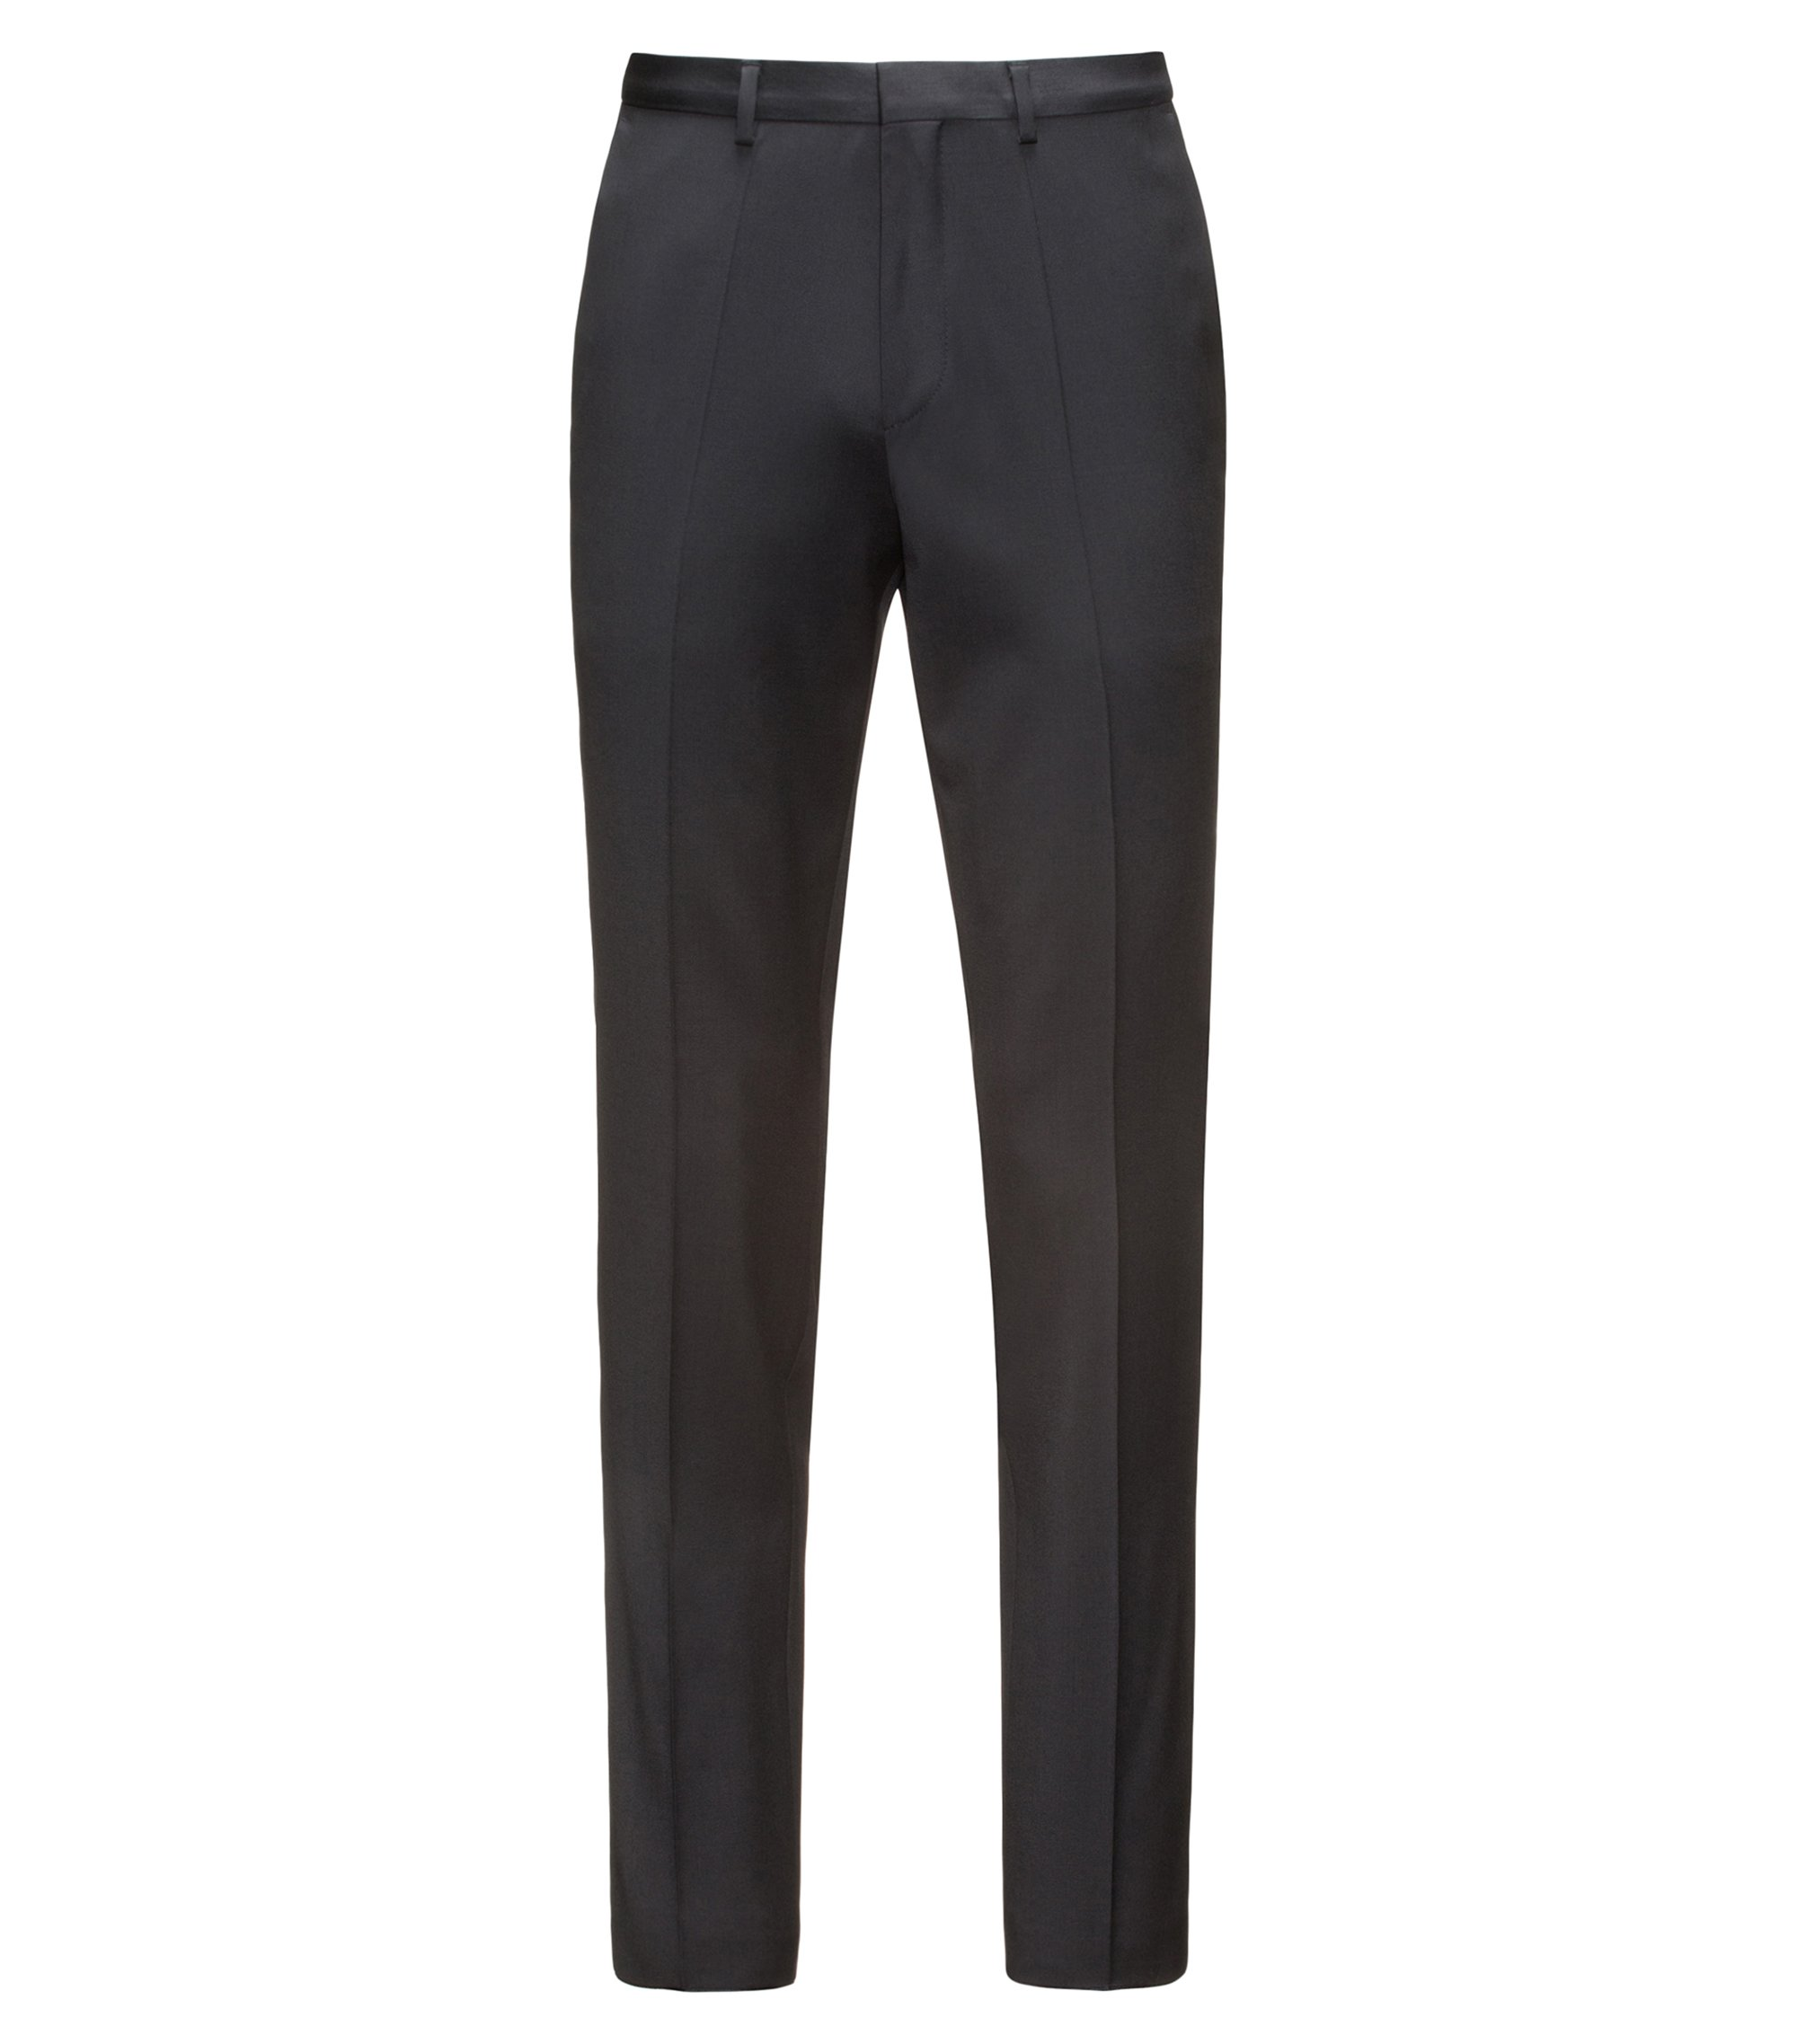 Pantalon Extra Slim Fit en twill de laine vierge naturellement extensible, Noir